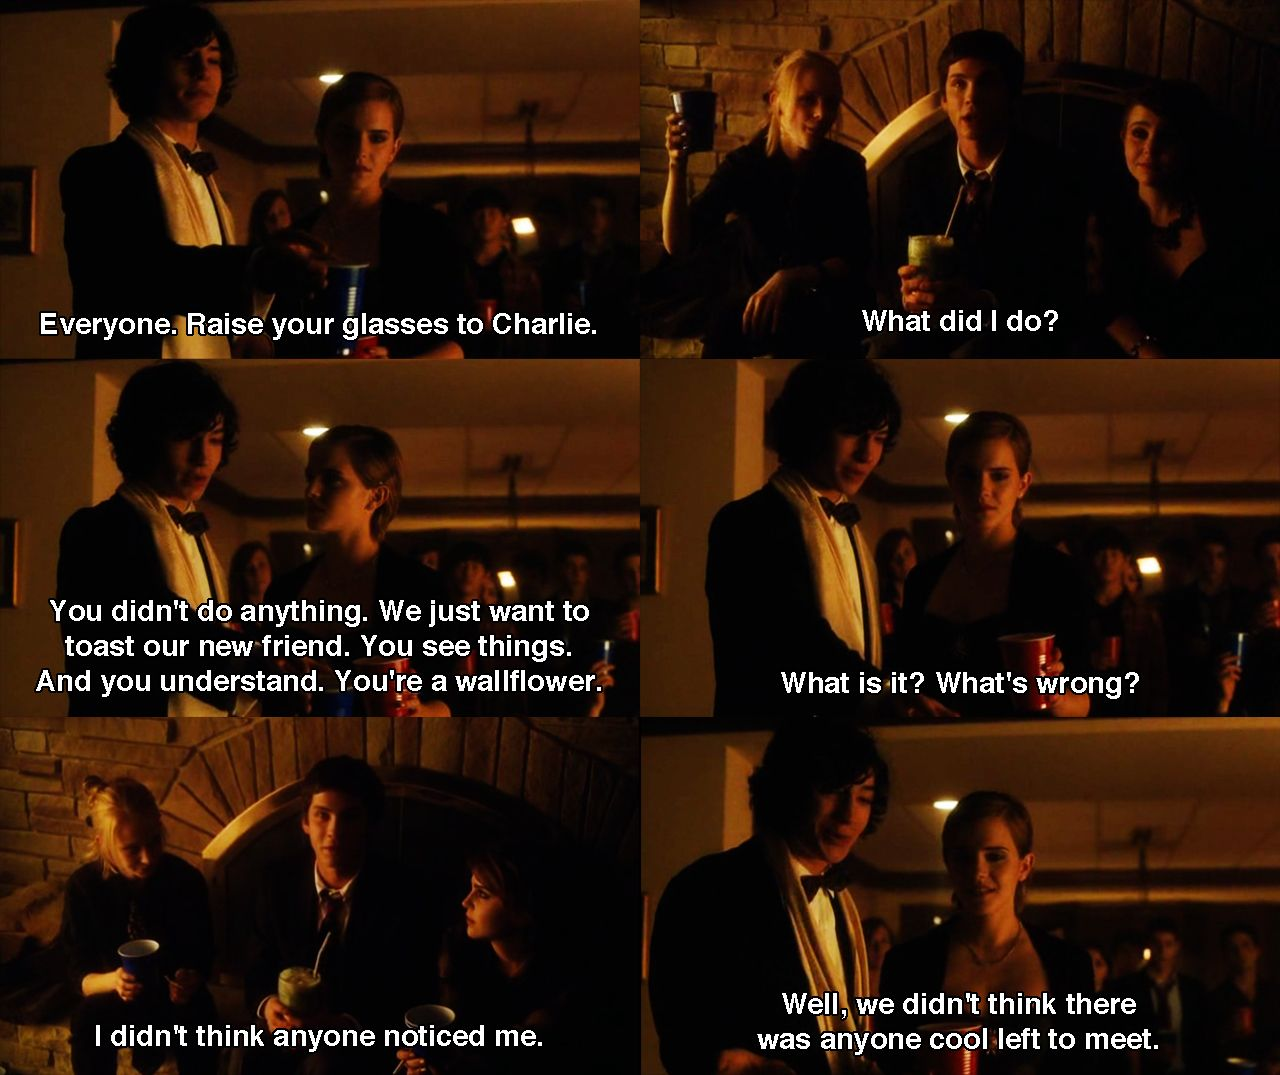 Movie Clip Quotes: The Perks Of Being A Wallflower